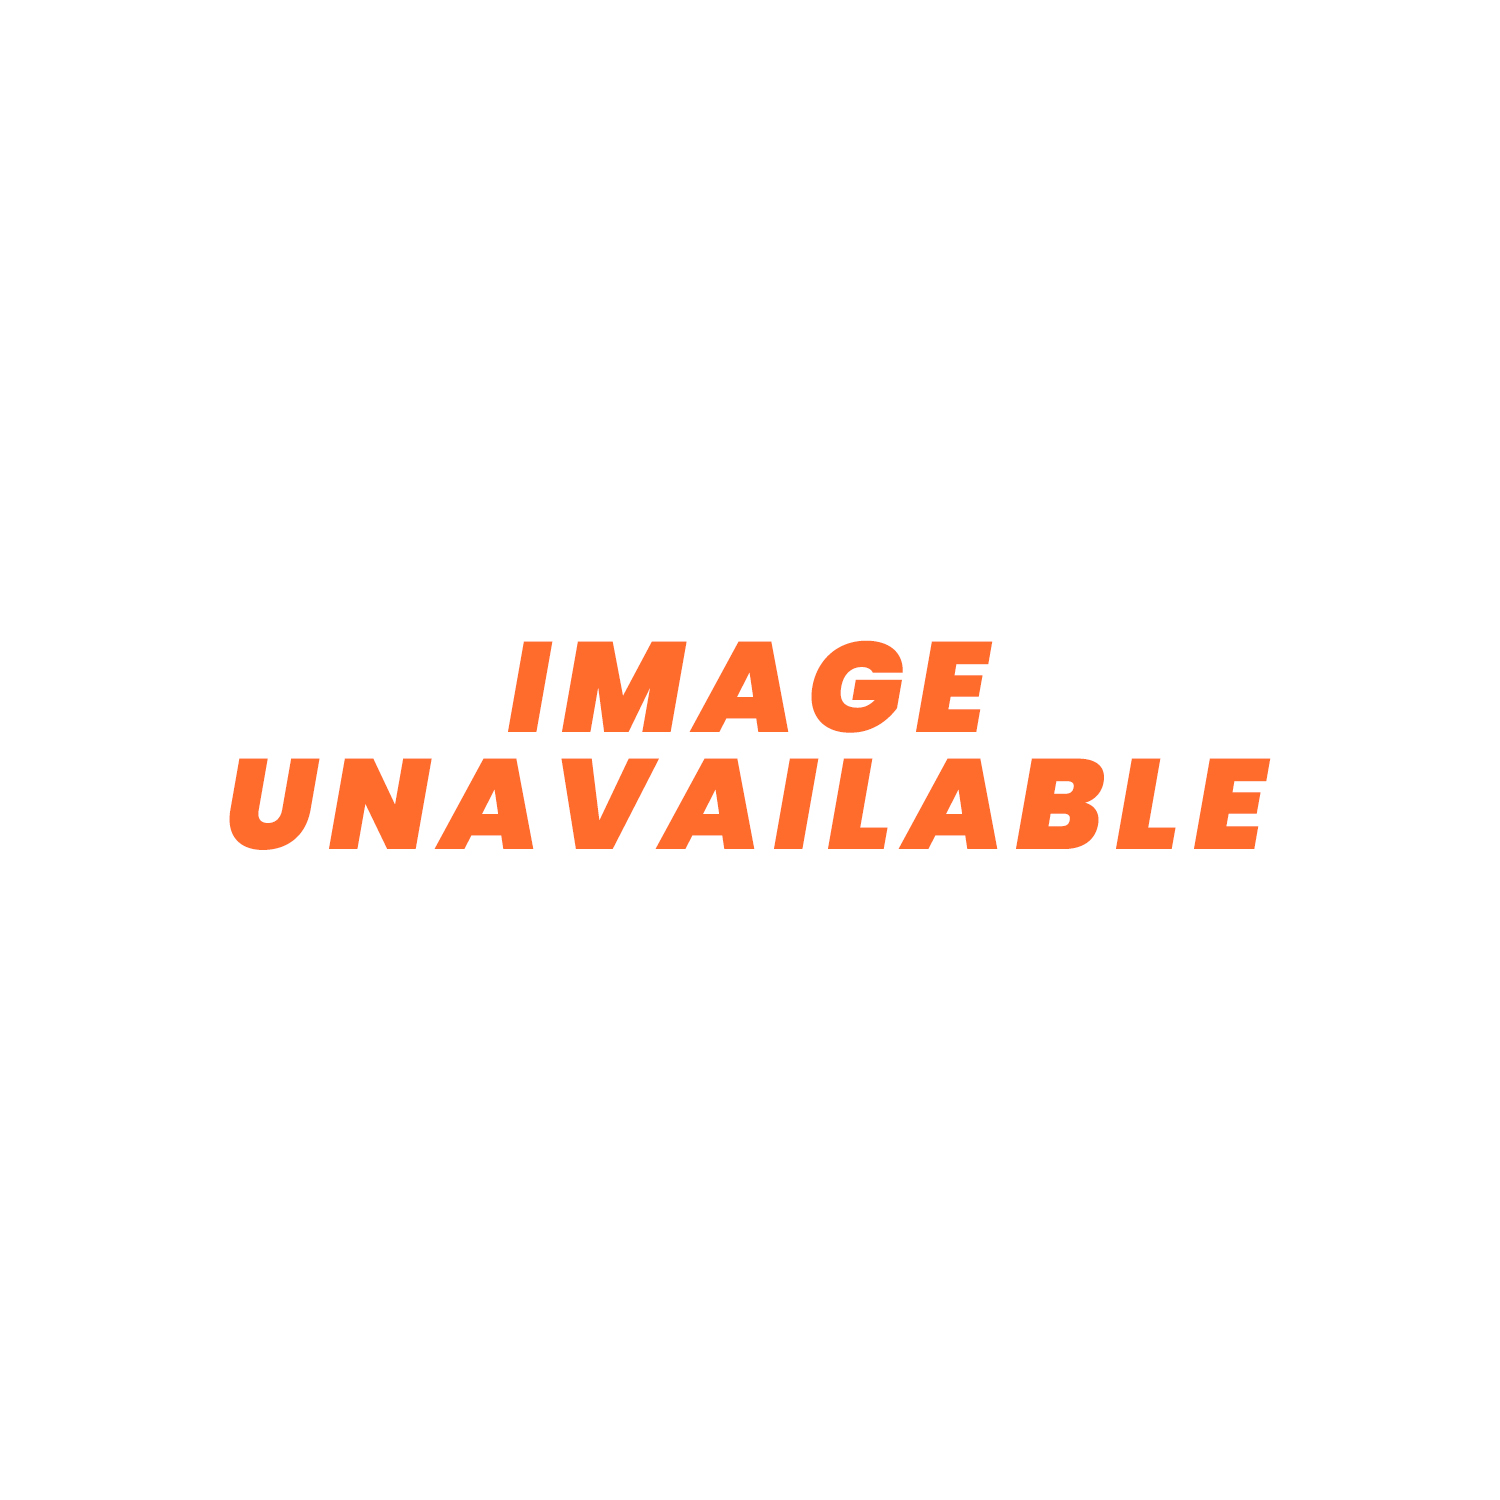 Sanden SD5H14 4510 6664 131cc Compressor 2G 'A' 132mm 12v